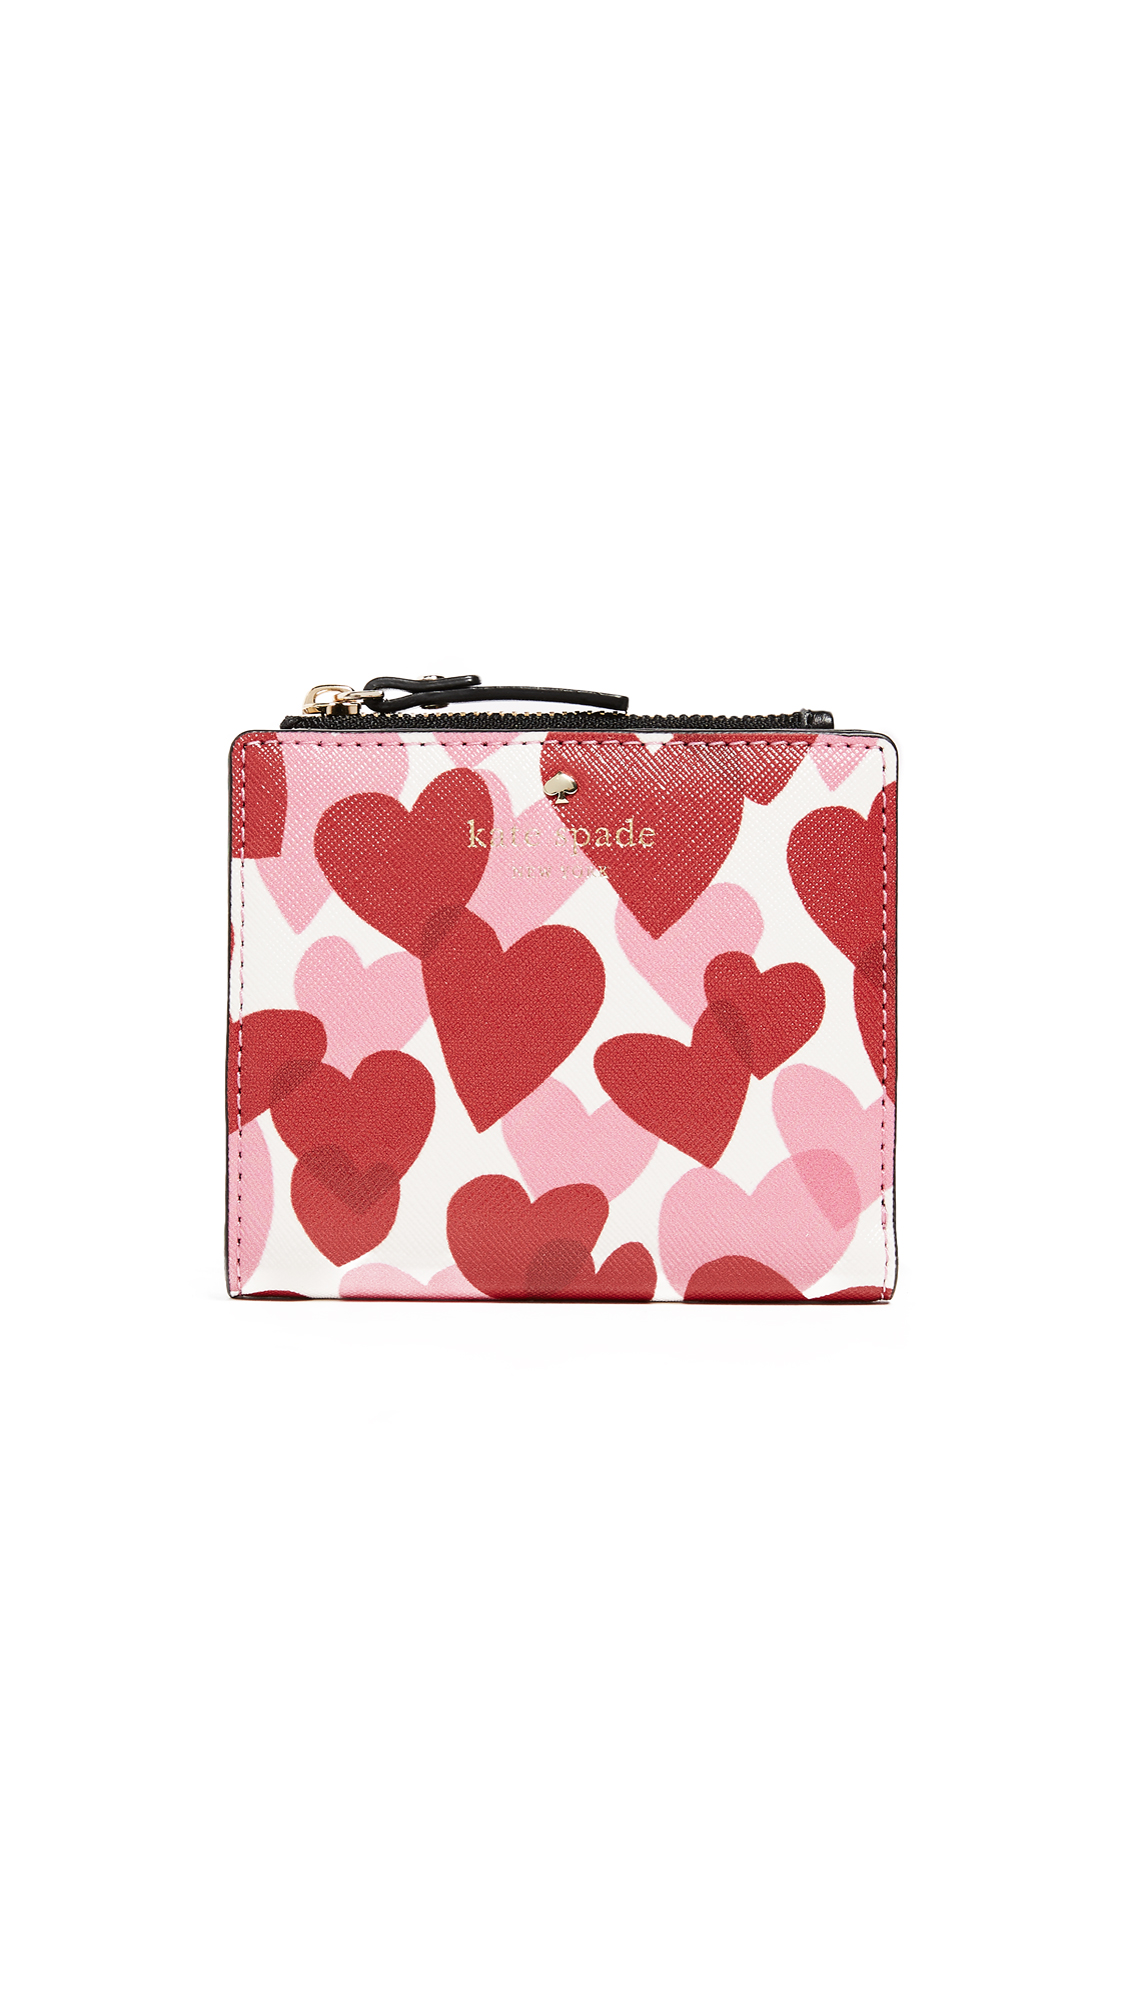 Kate Spade New York Ours Truly Adalyn Mini Wallet - Heart Party